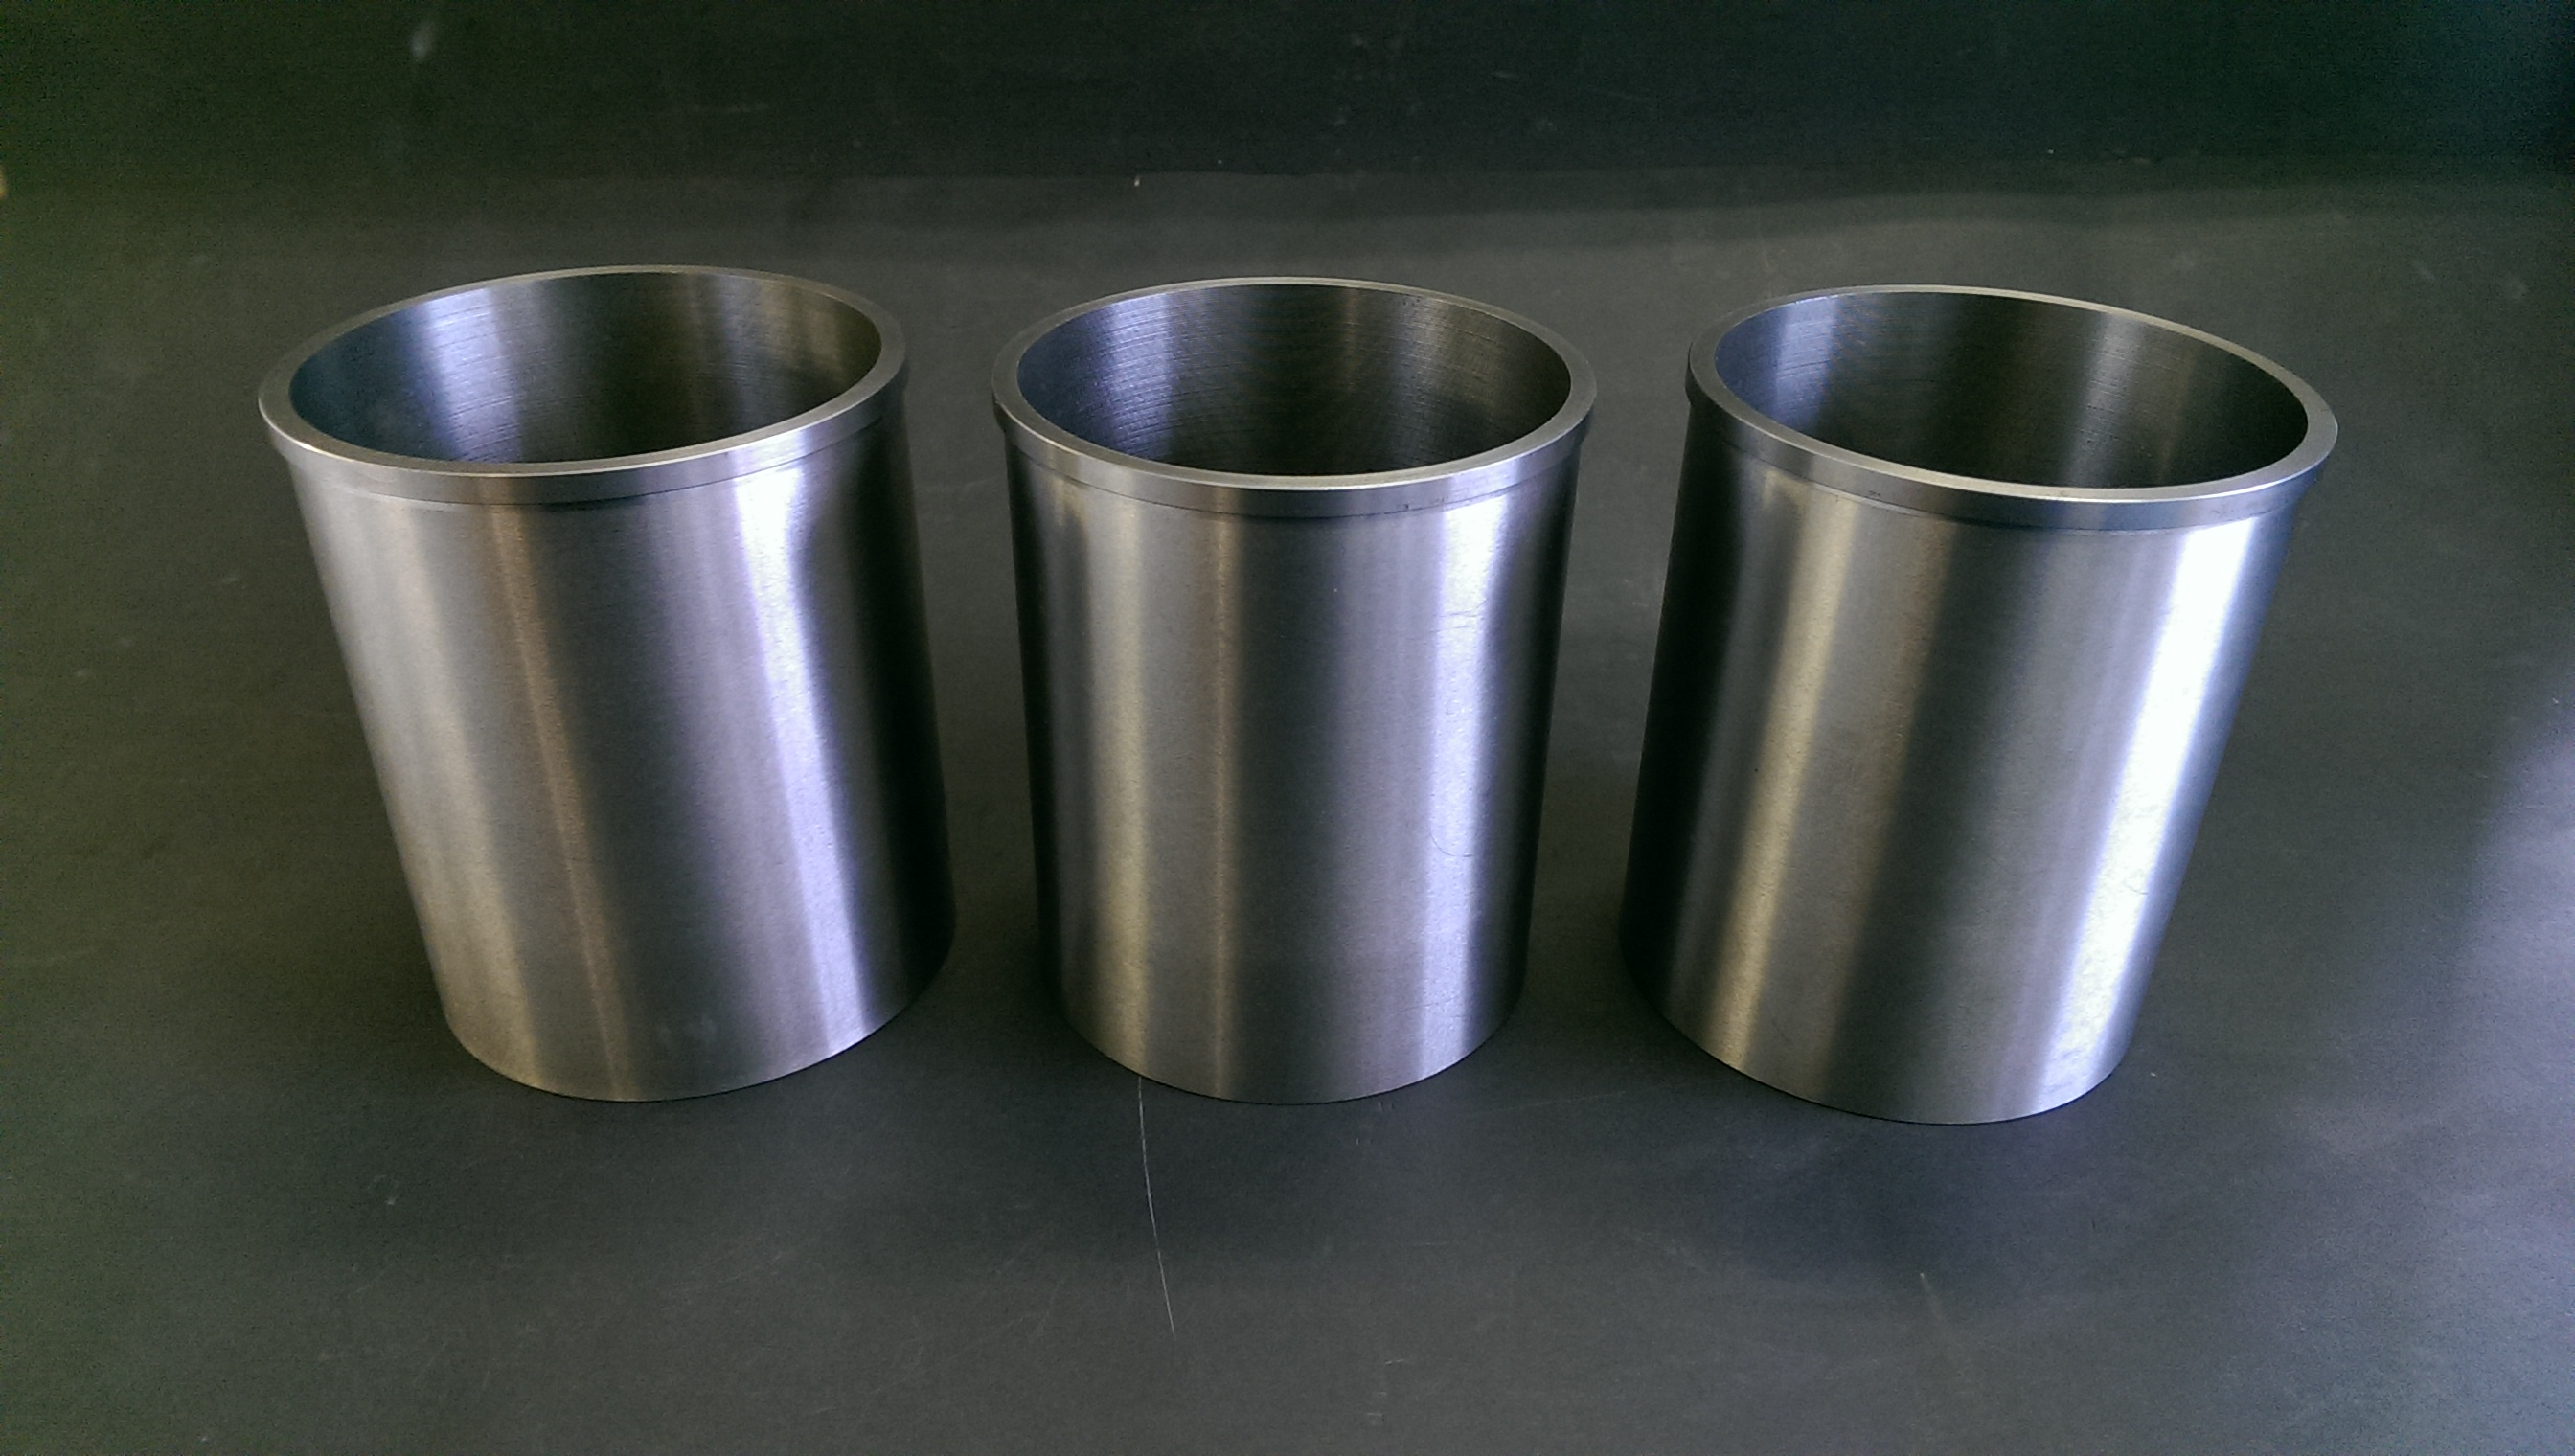 HT Howard - Cylinder liner fitting for cars, motorcycles, vans